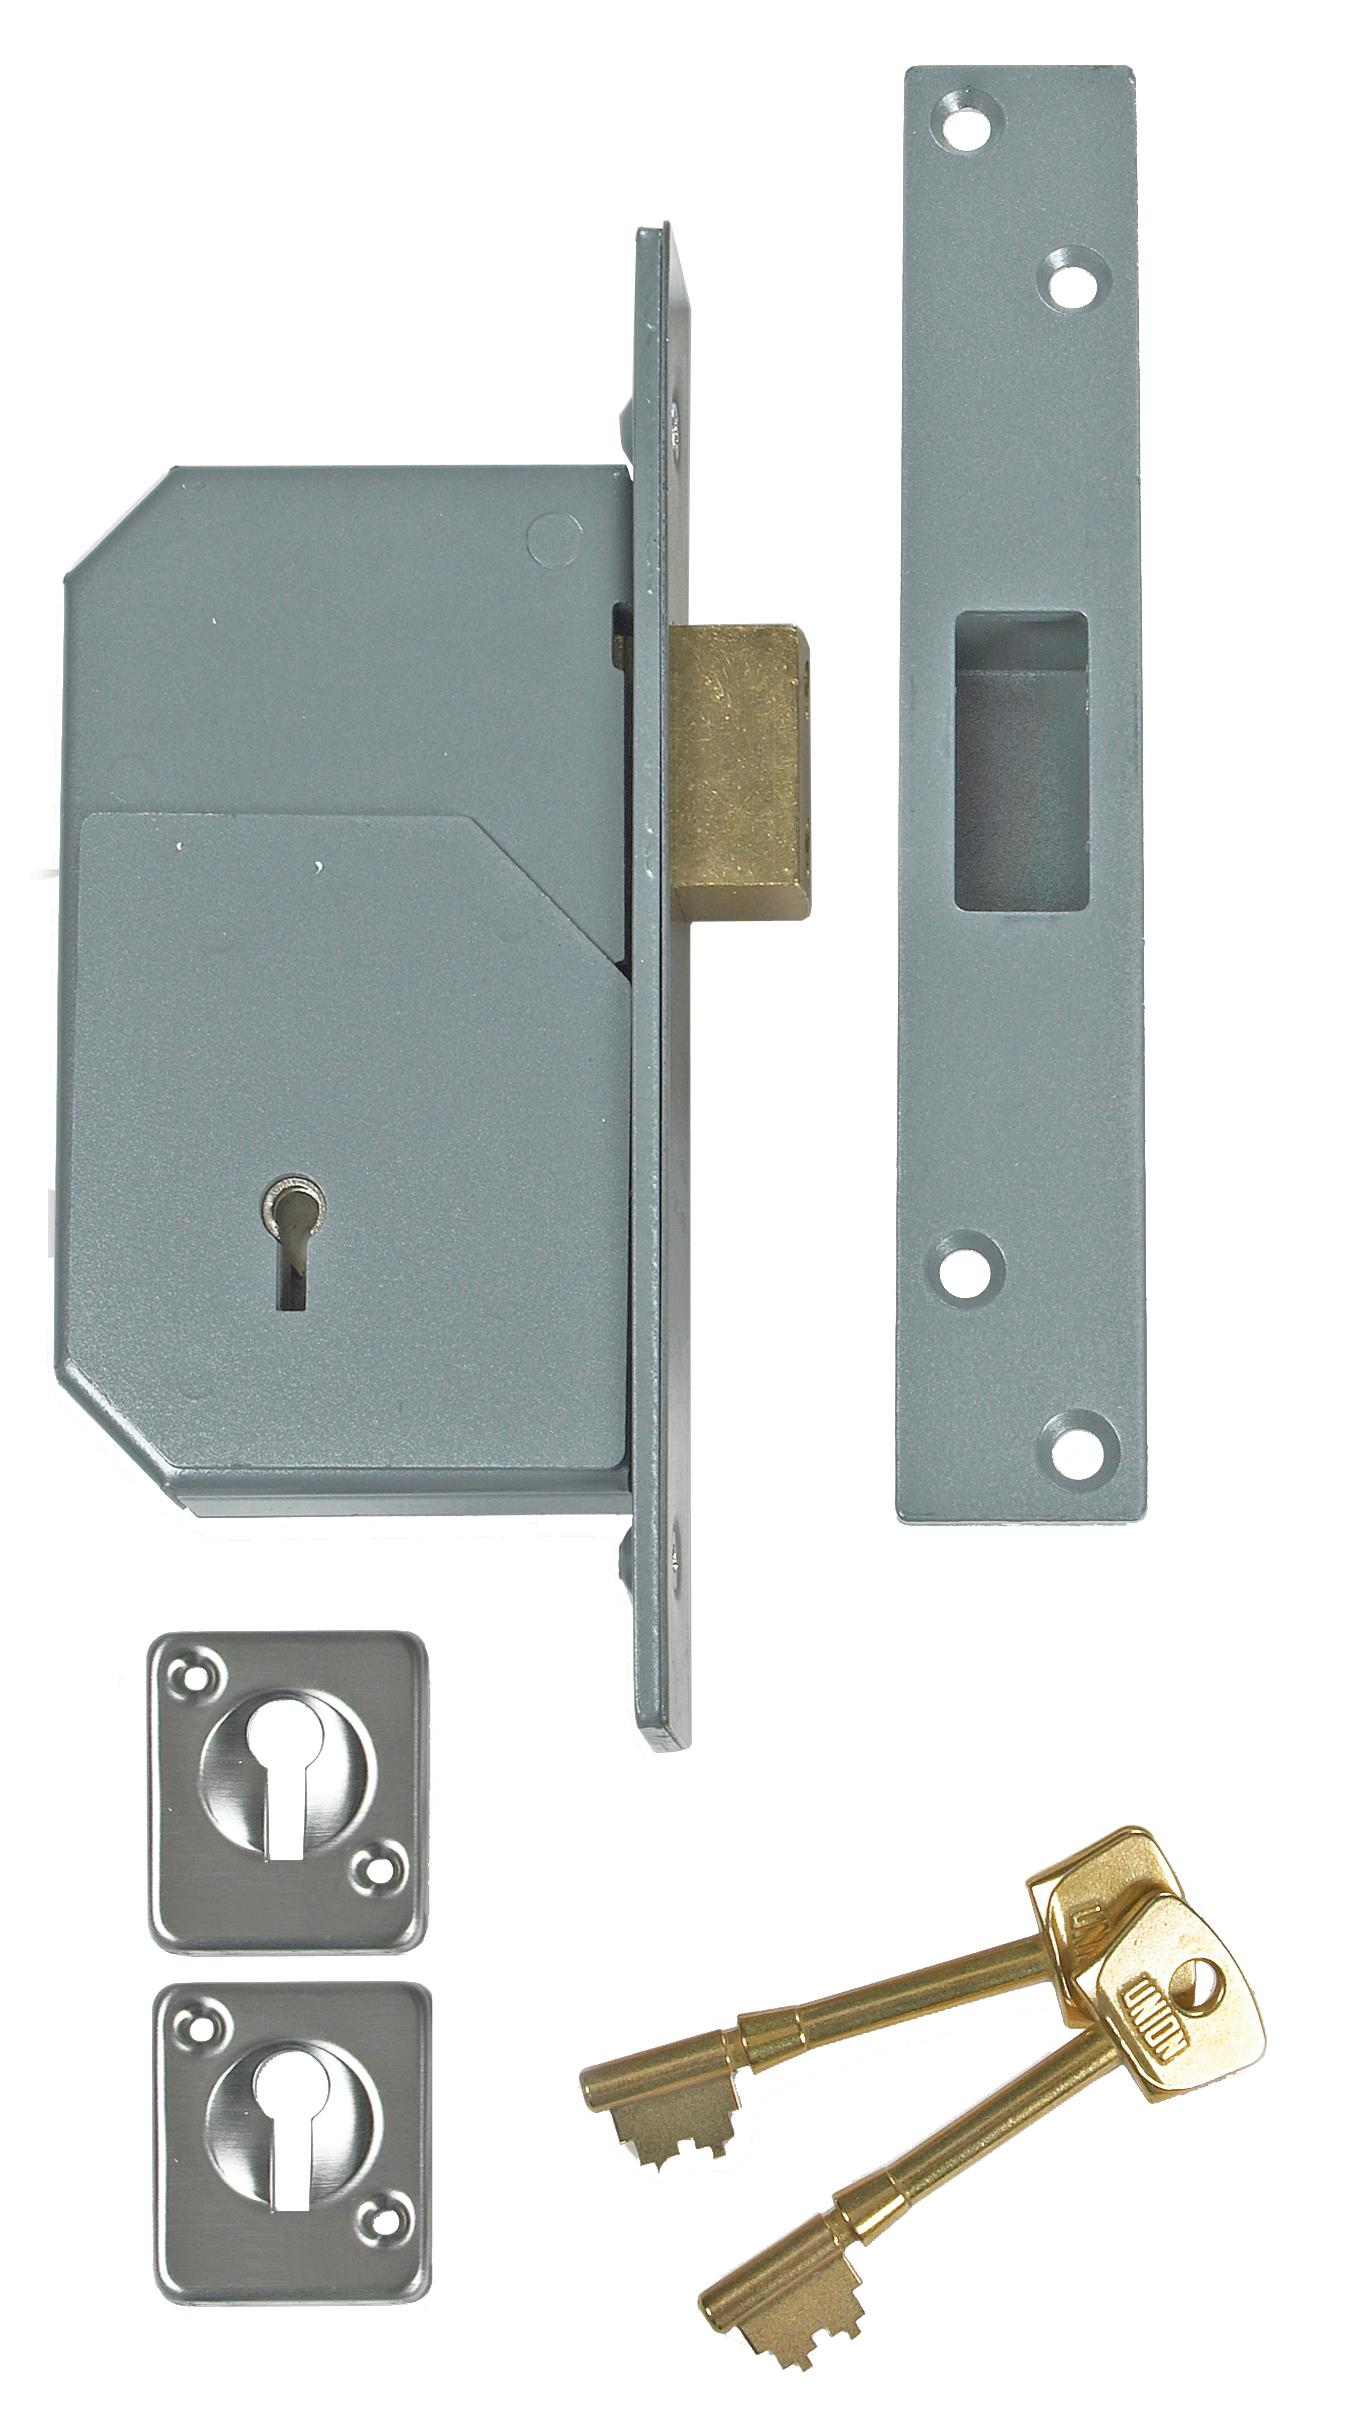 3G110 - 5 Detainer Mortice Deadlock